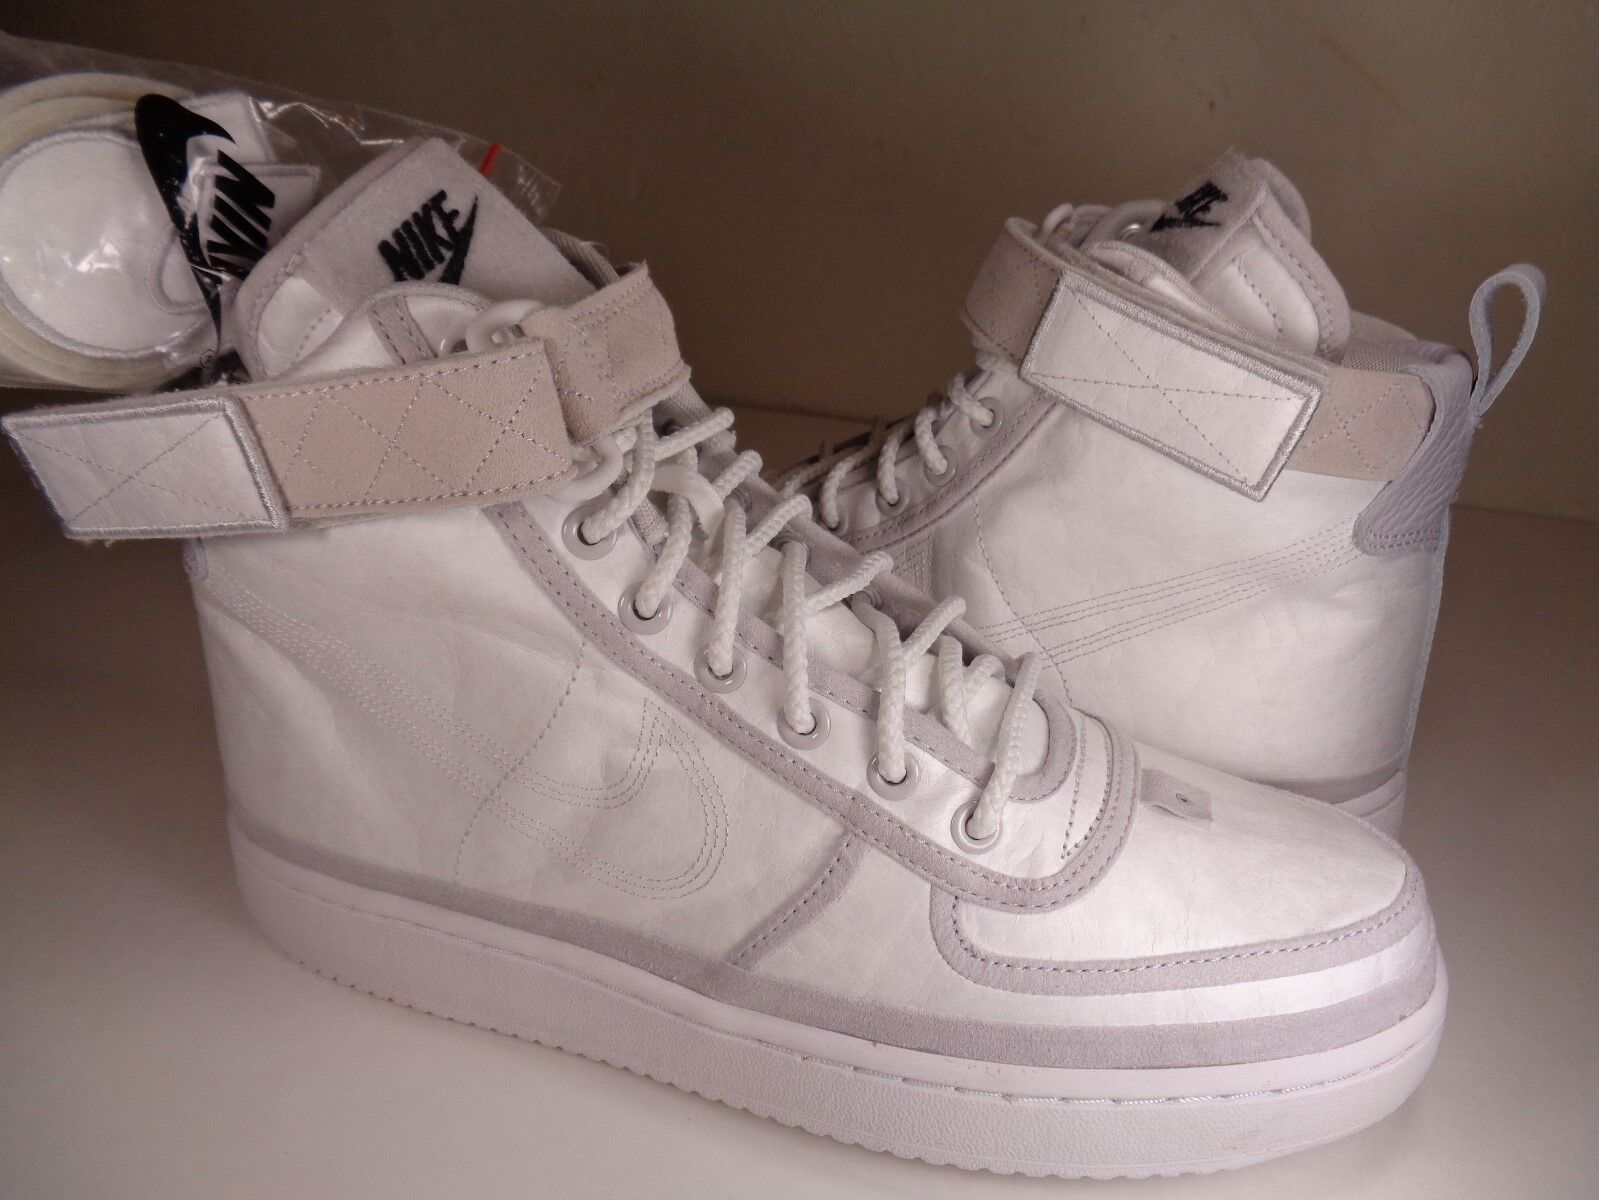 Nike Vandal High Supreme AS QS All Star 90/10 ASW Vast Grey SZ 8 (AQ0113-001)